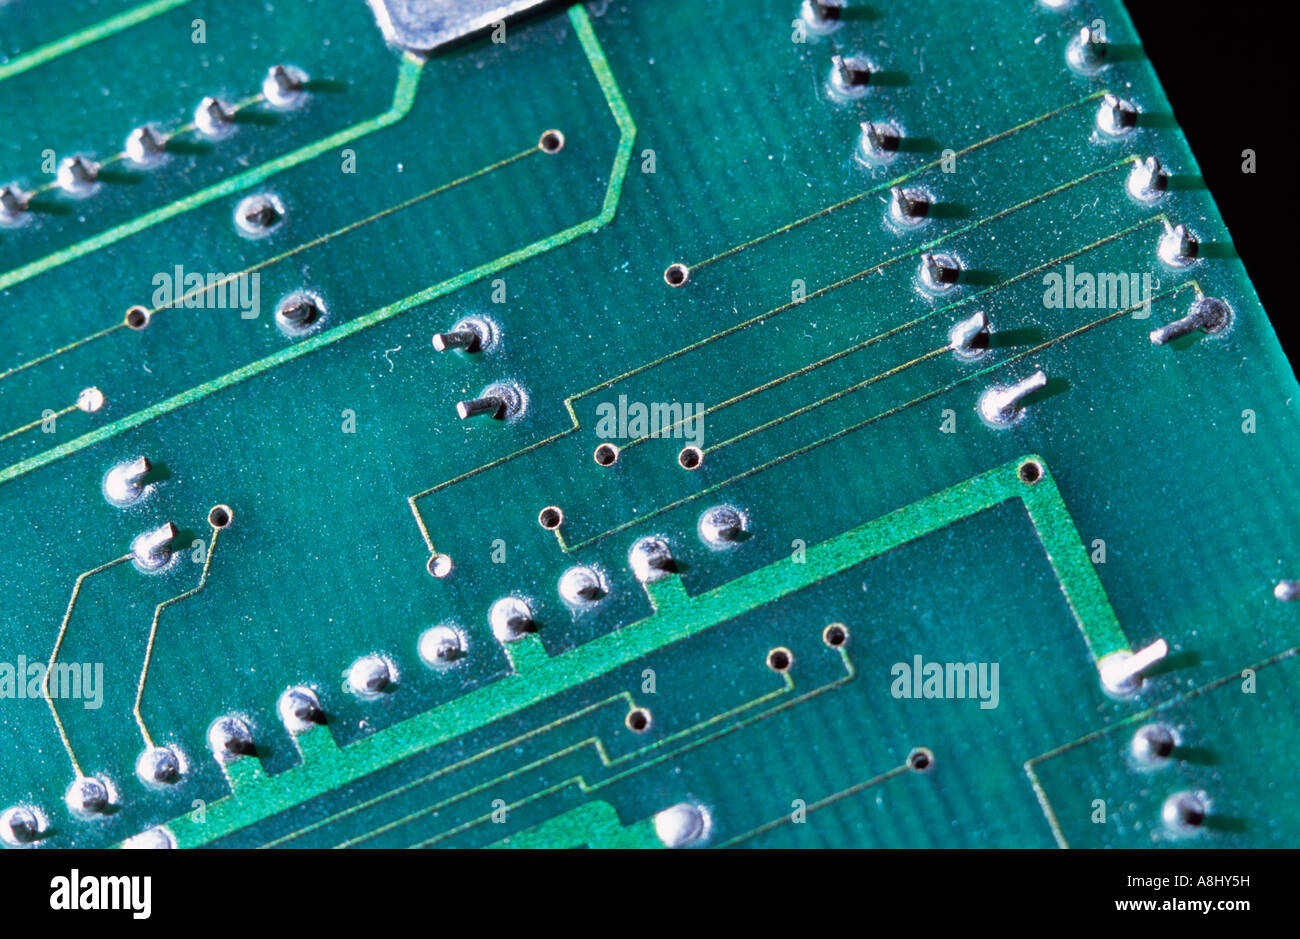 Circuit Board Assembly Buy Electronic Circuits Boardcircuit Eectronics Printed Showing Conductive Traces And Stock Through Hole Connections